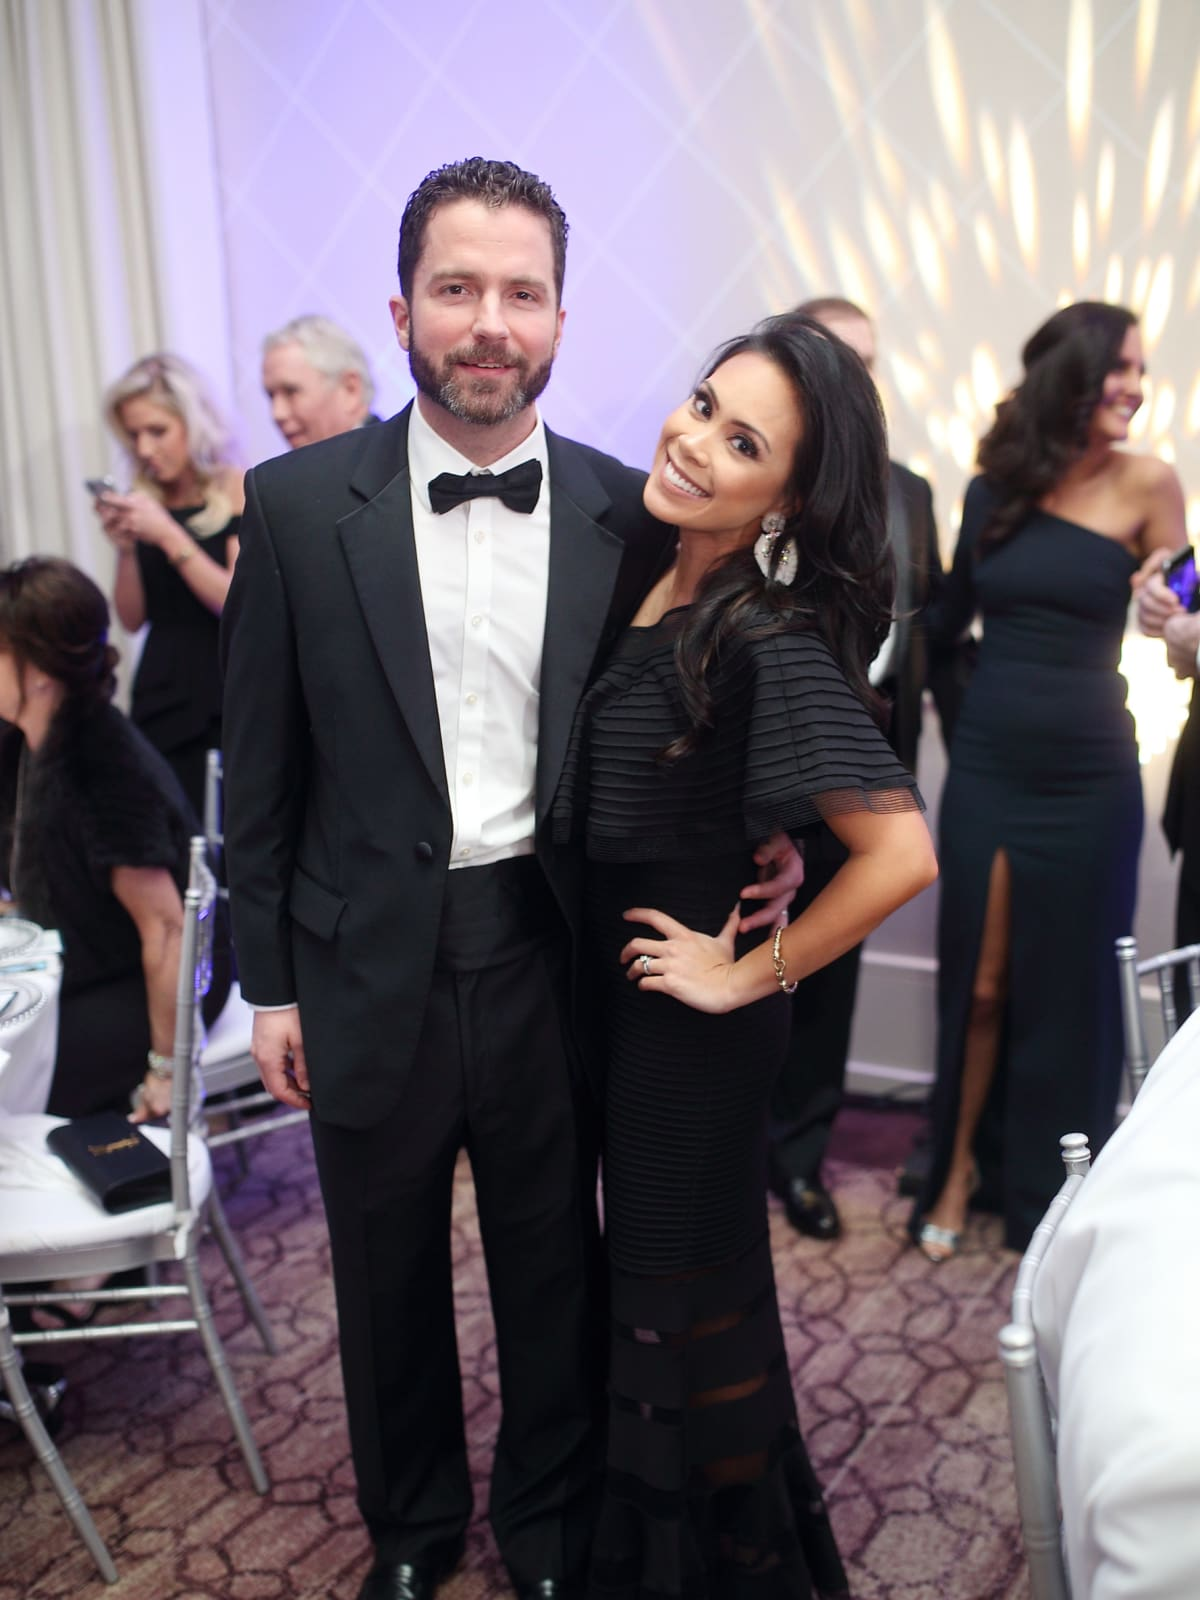 Stephen and Kim Perich